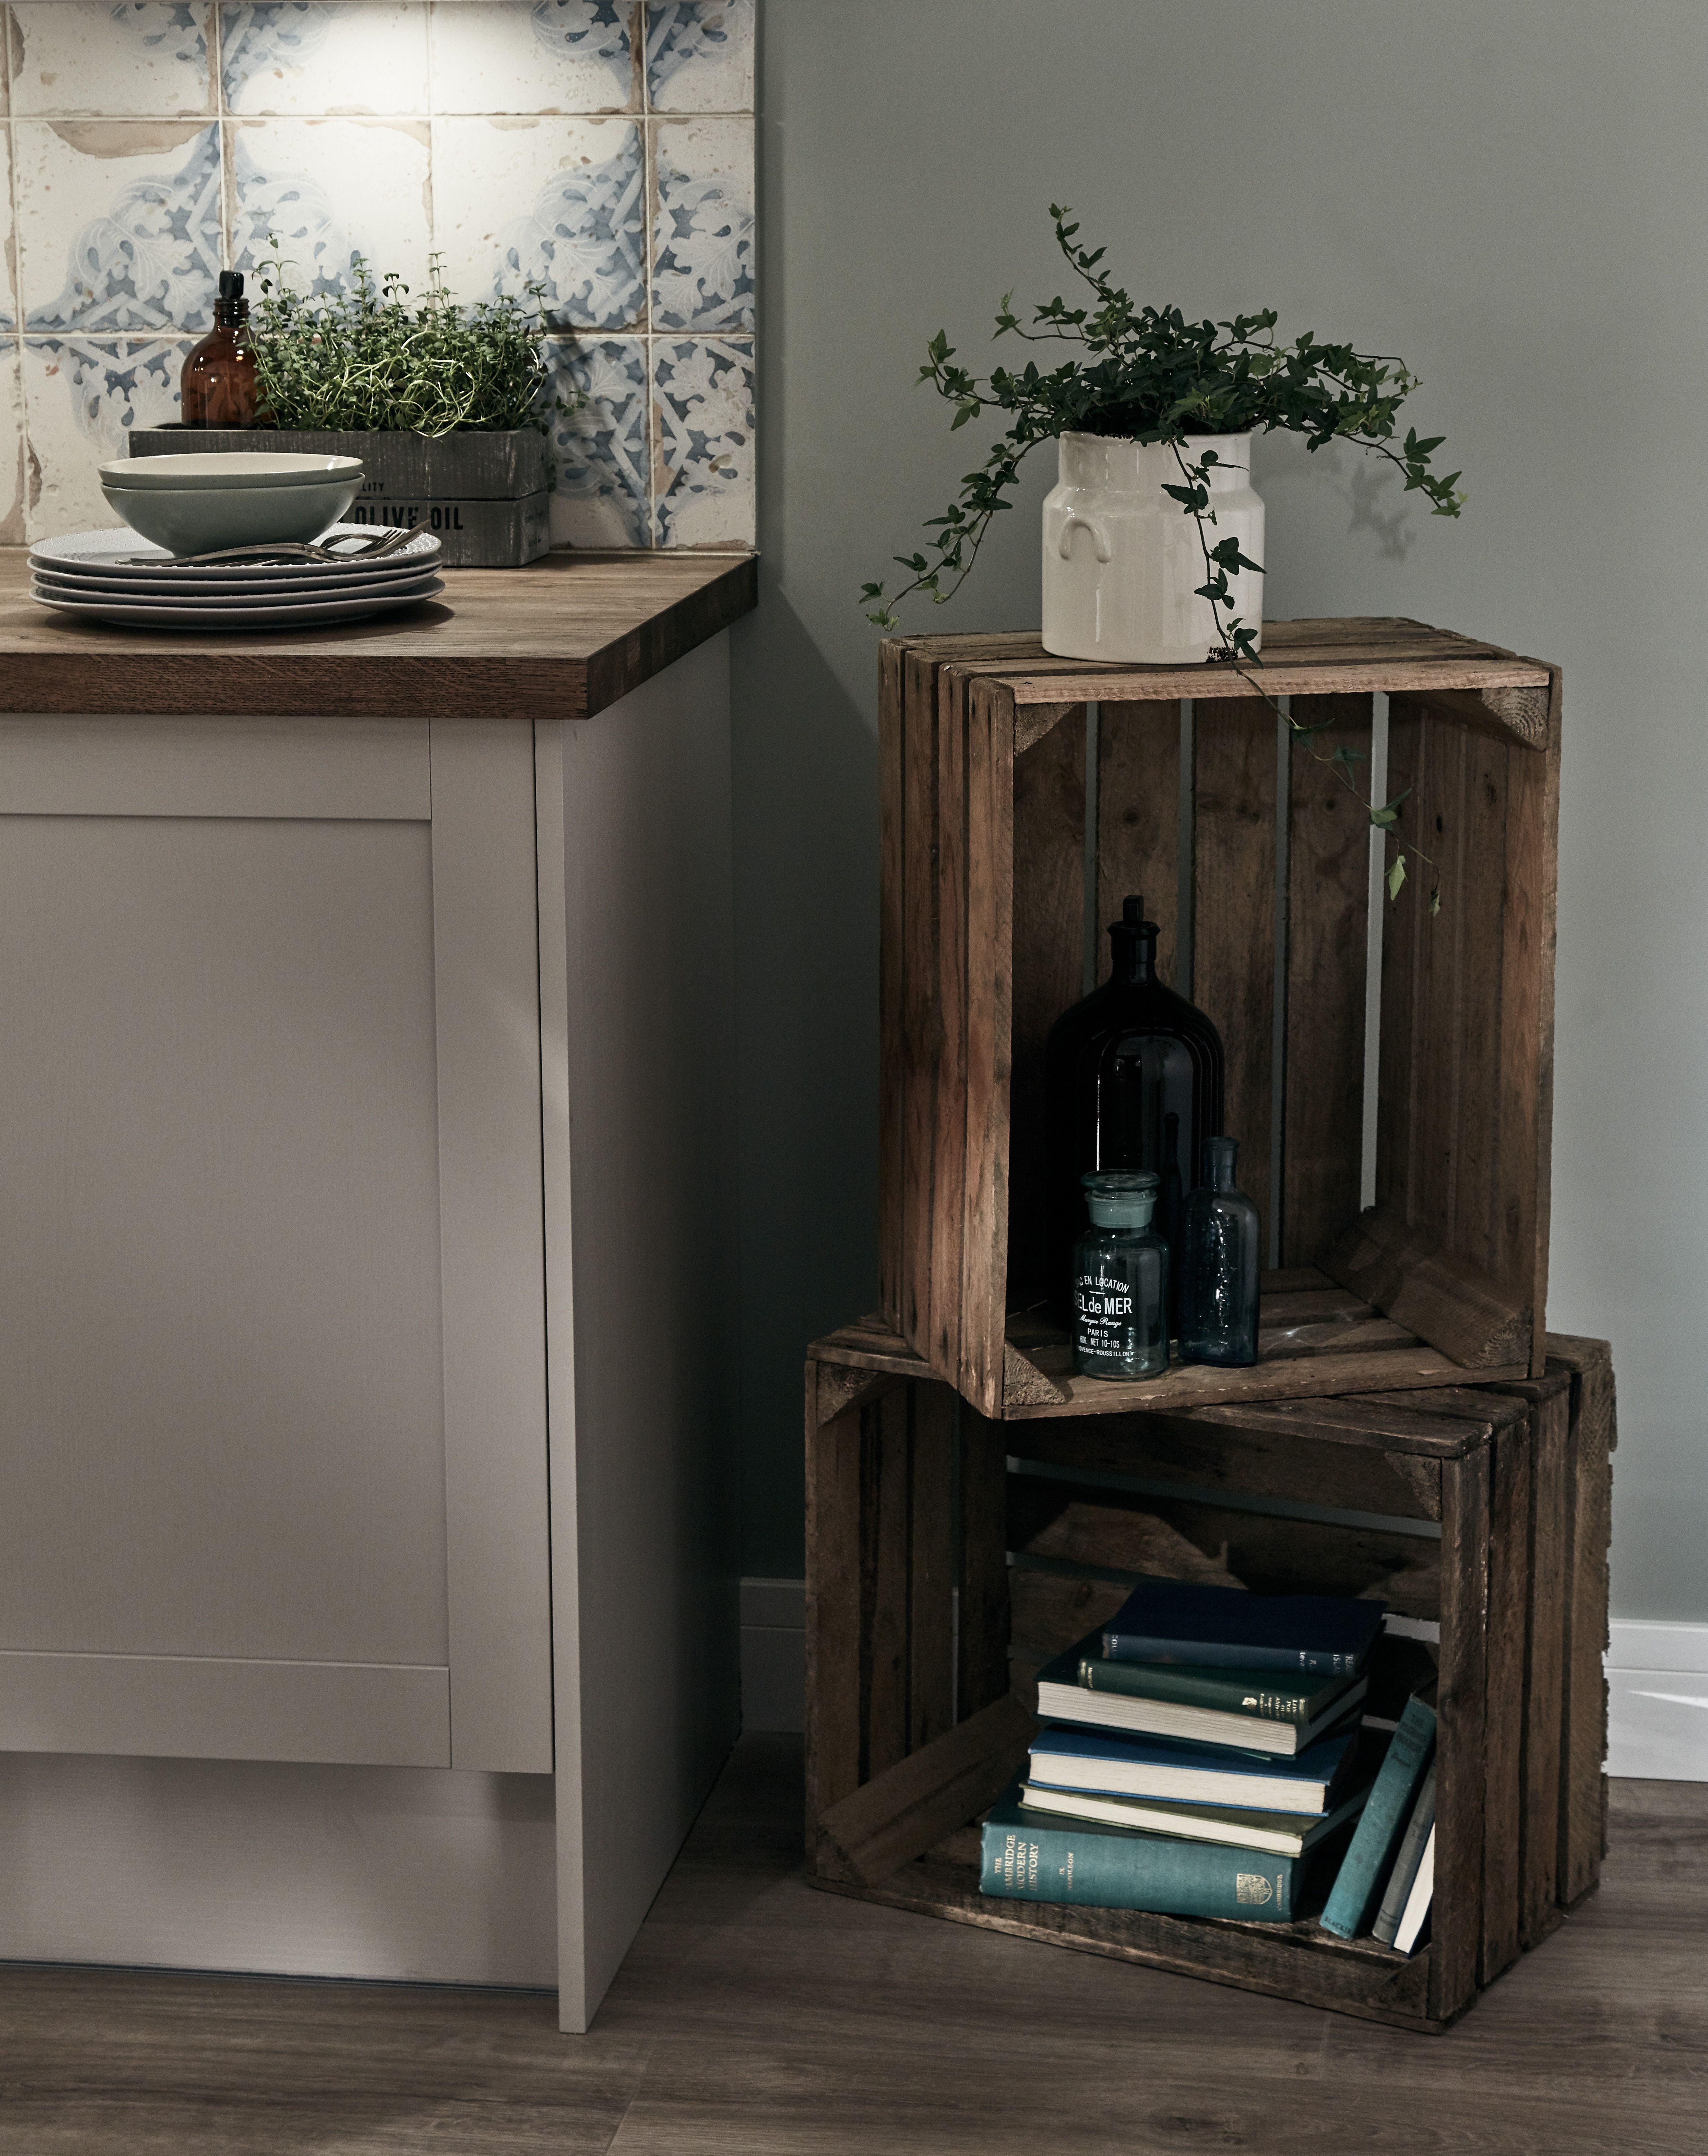 a bespoke mantelshelf can complete the shaker look in your kitchen a collection of vintage crates provide a versatile and quirky storage solution in your kitchen